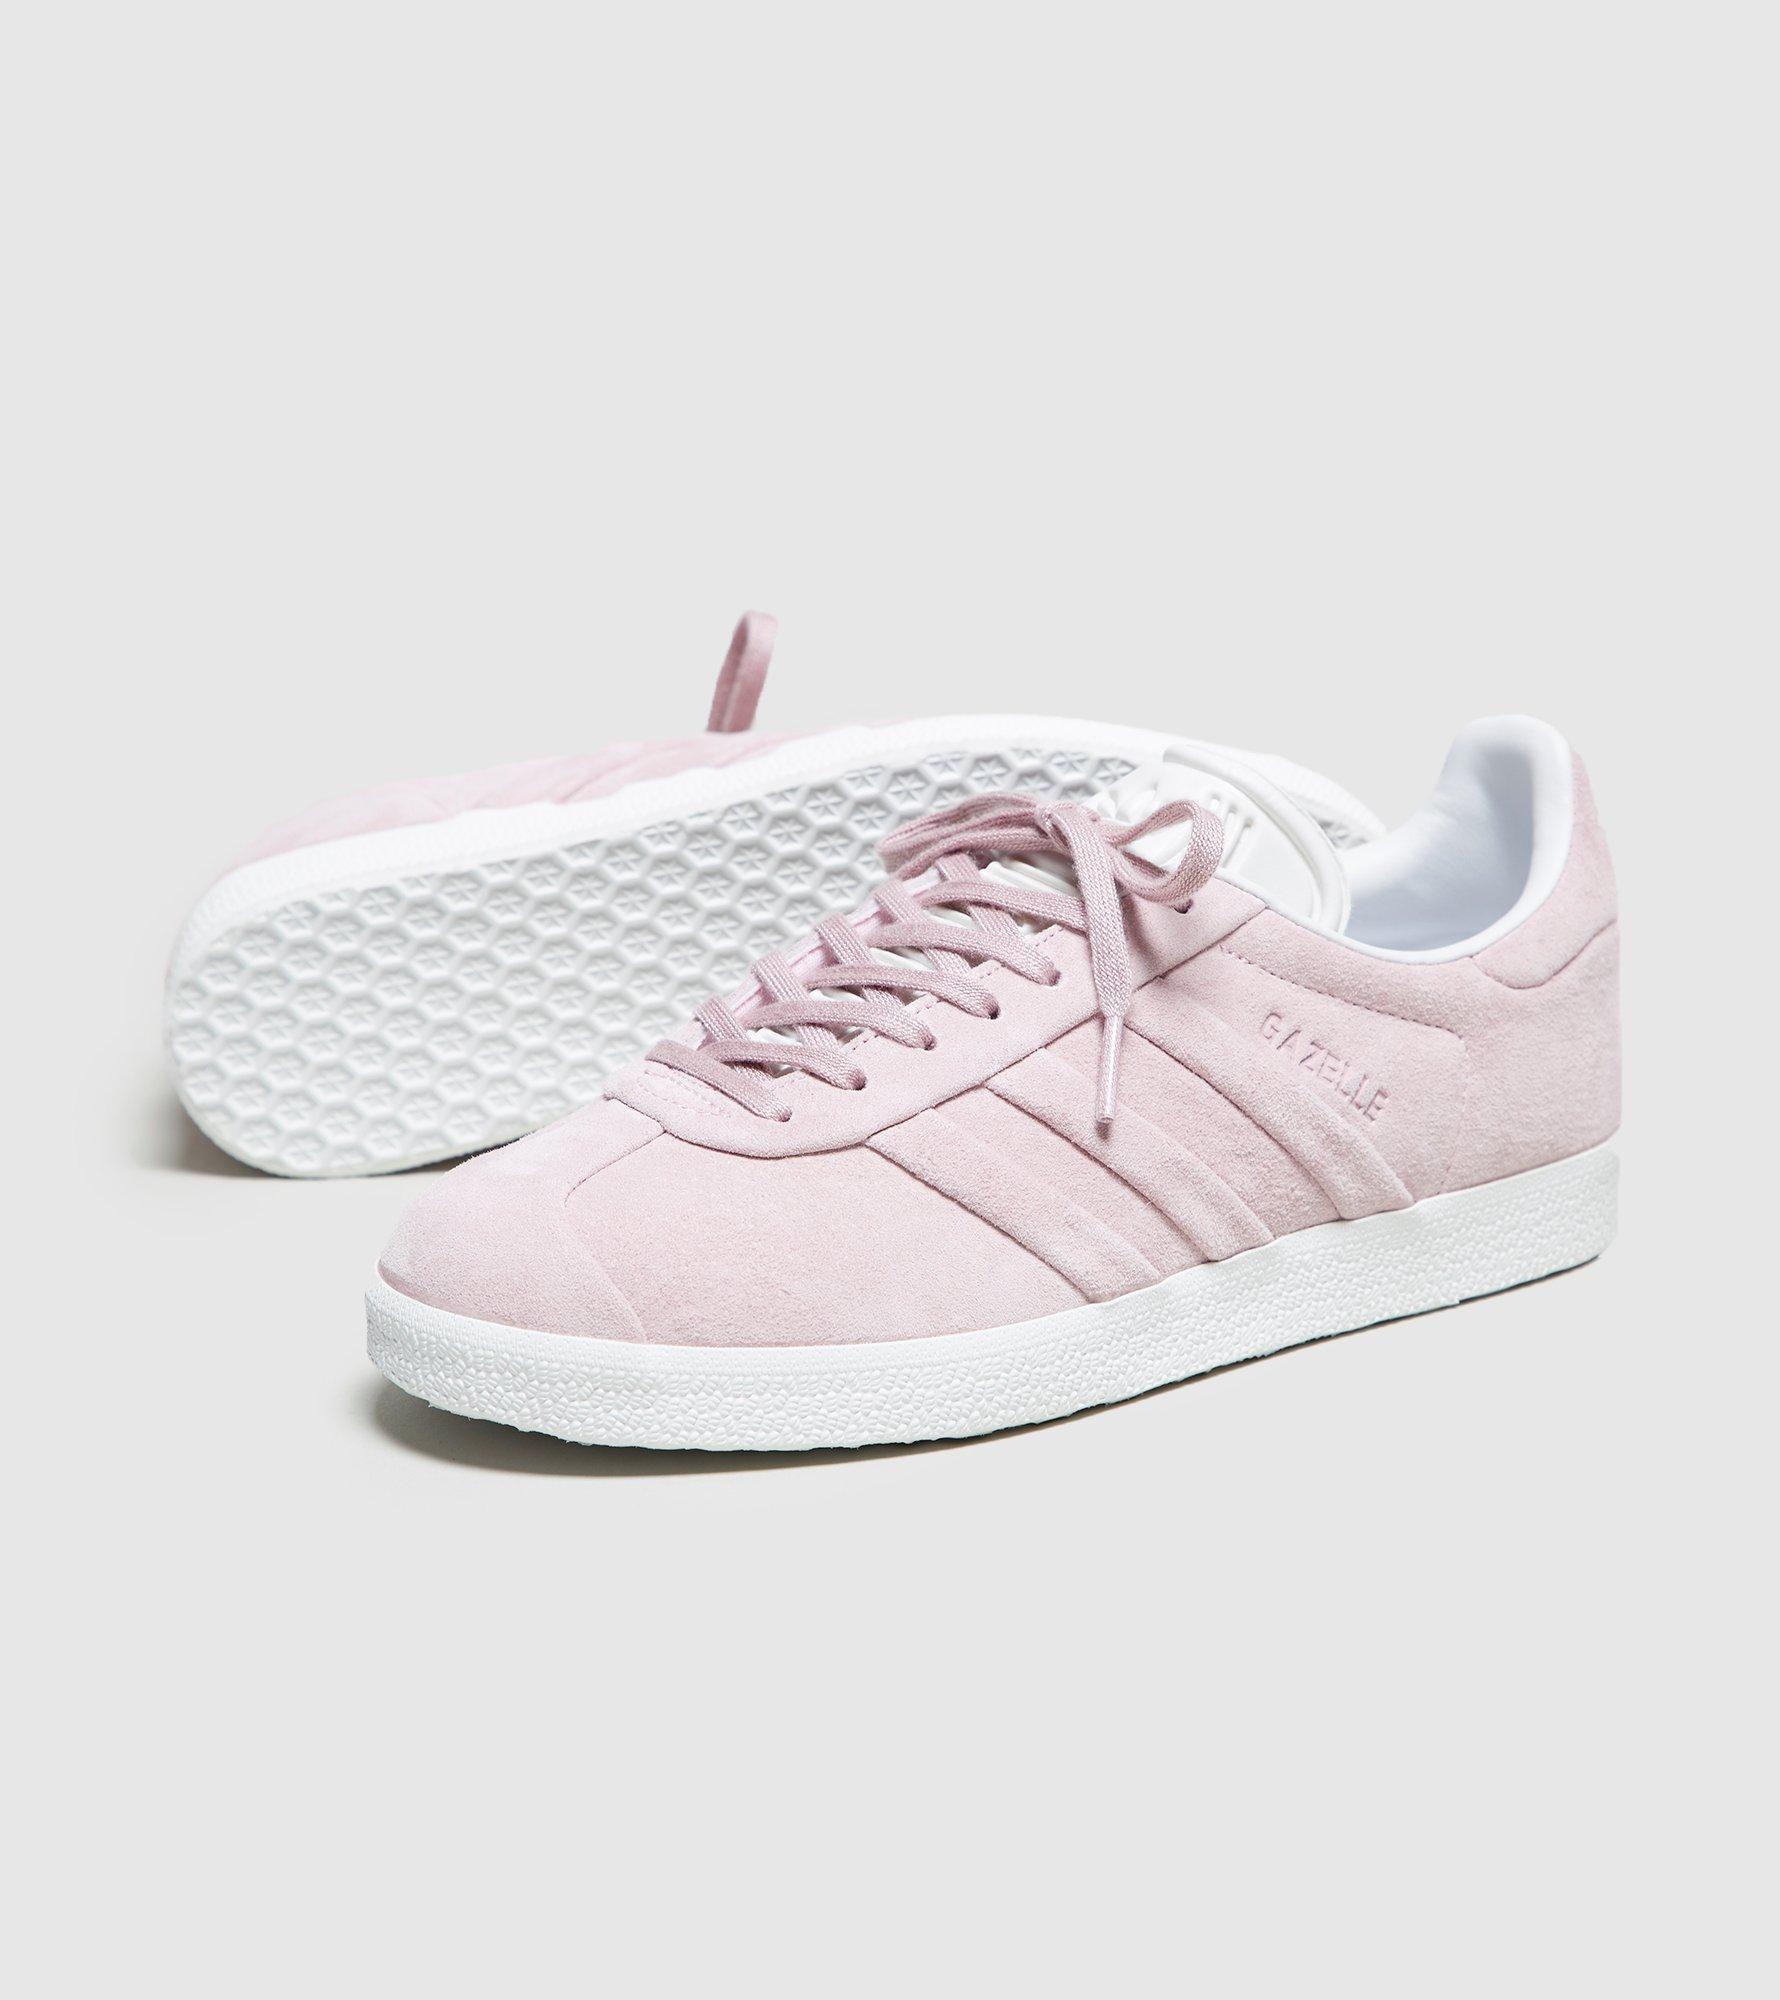 60610c6d0437fb Lyst - adidas Originals Gazelle Stitch And Turn Women s in Pink